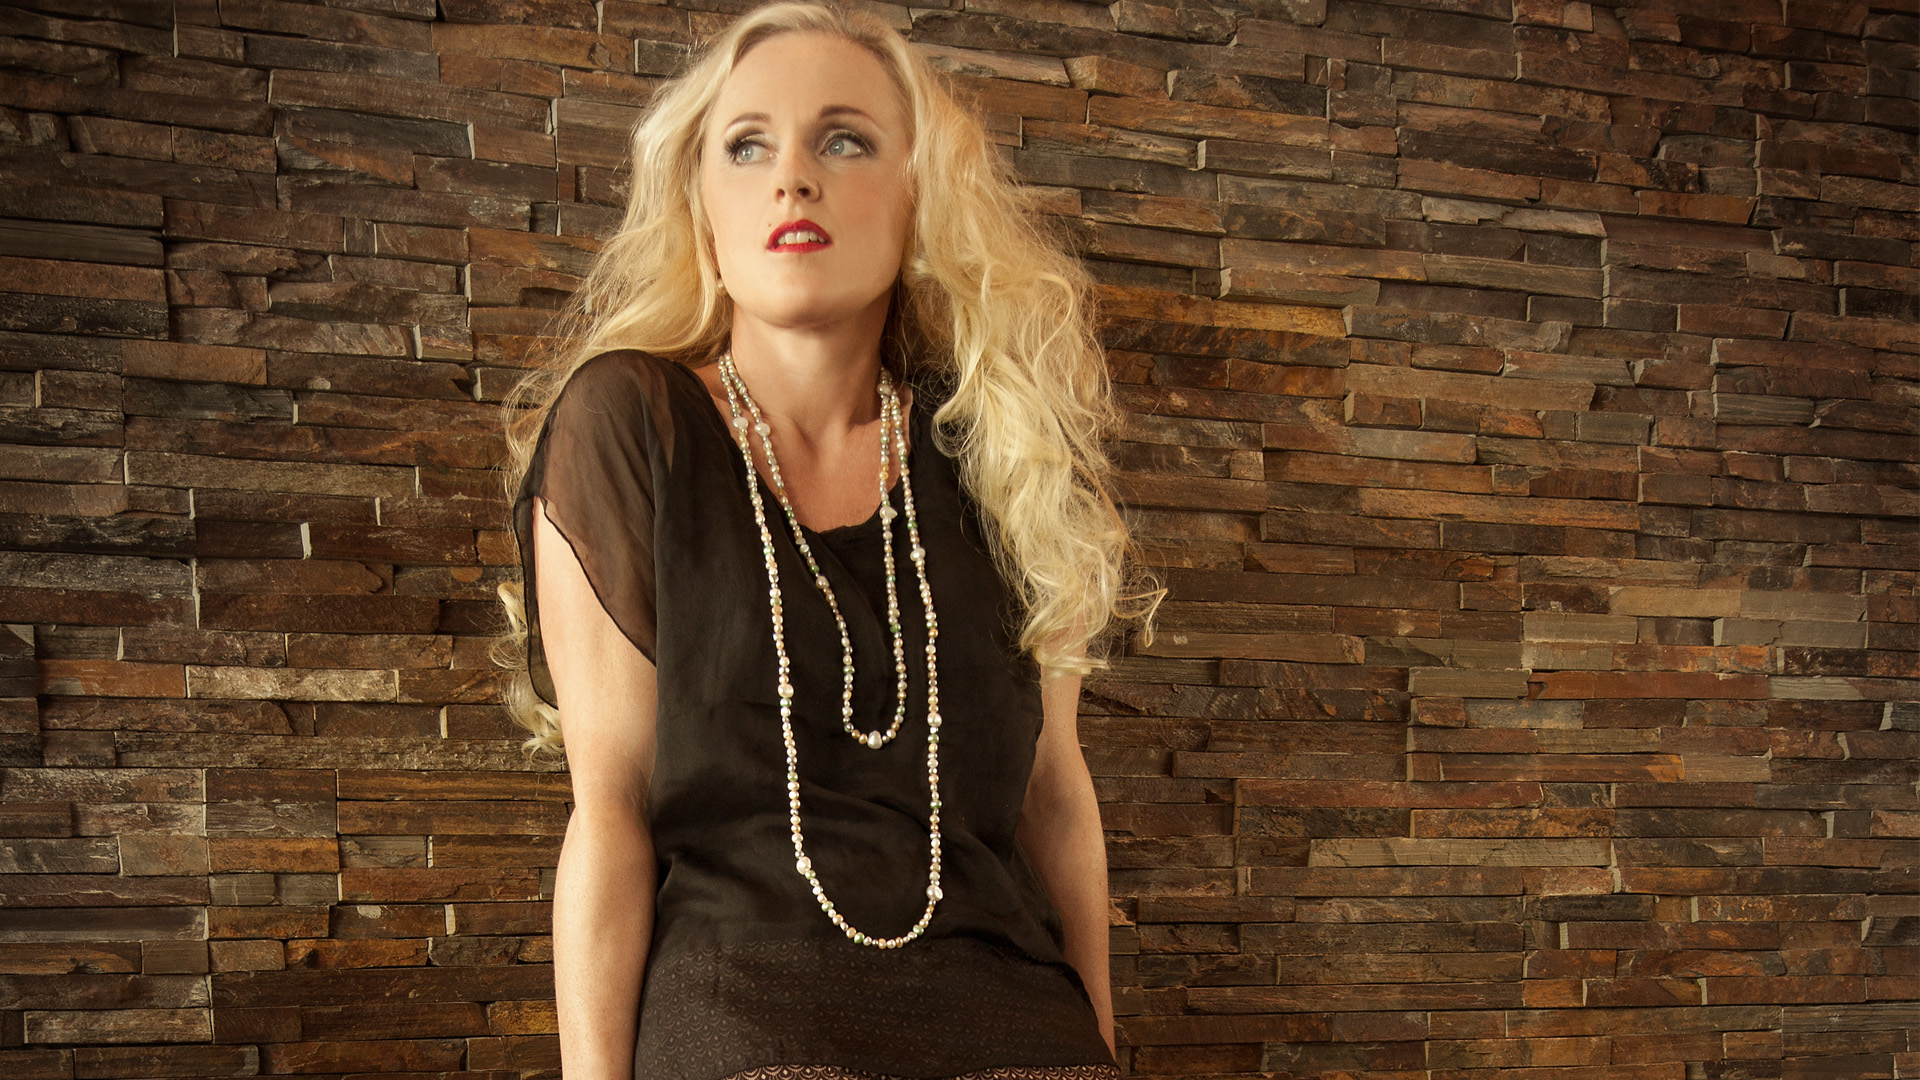 People 1920x1080 singer blonde Liv Kristine